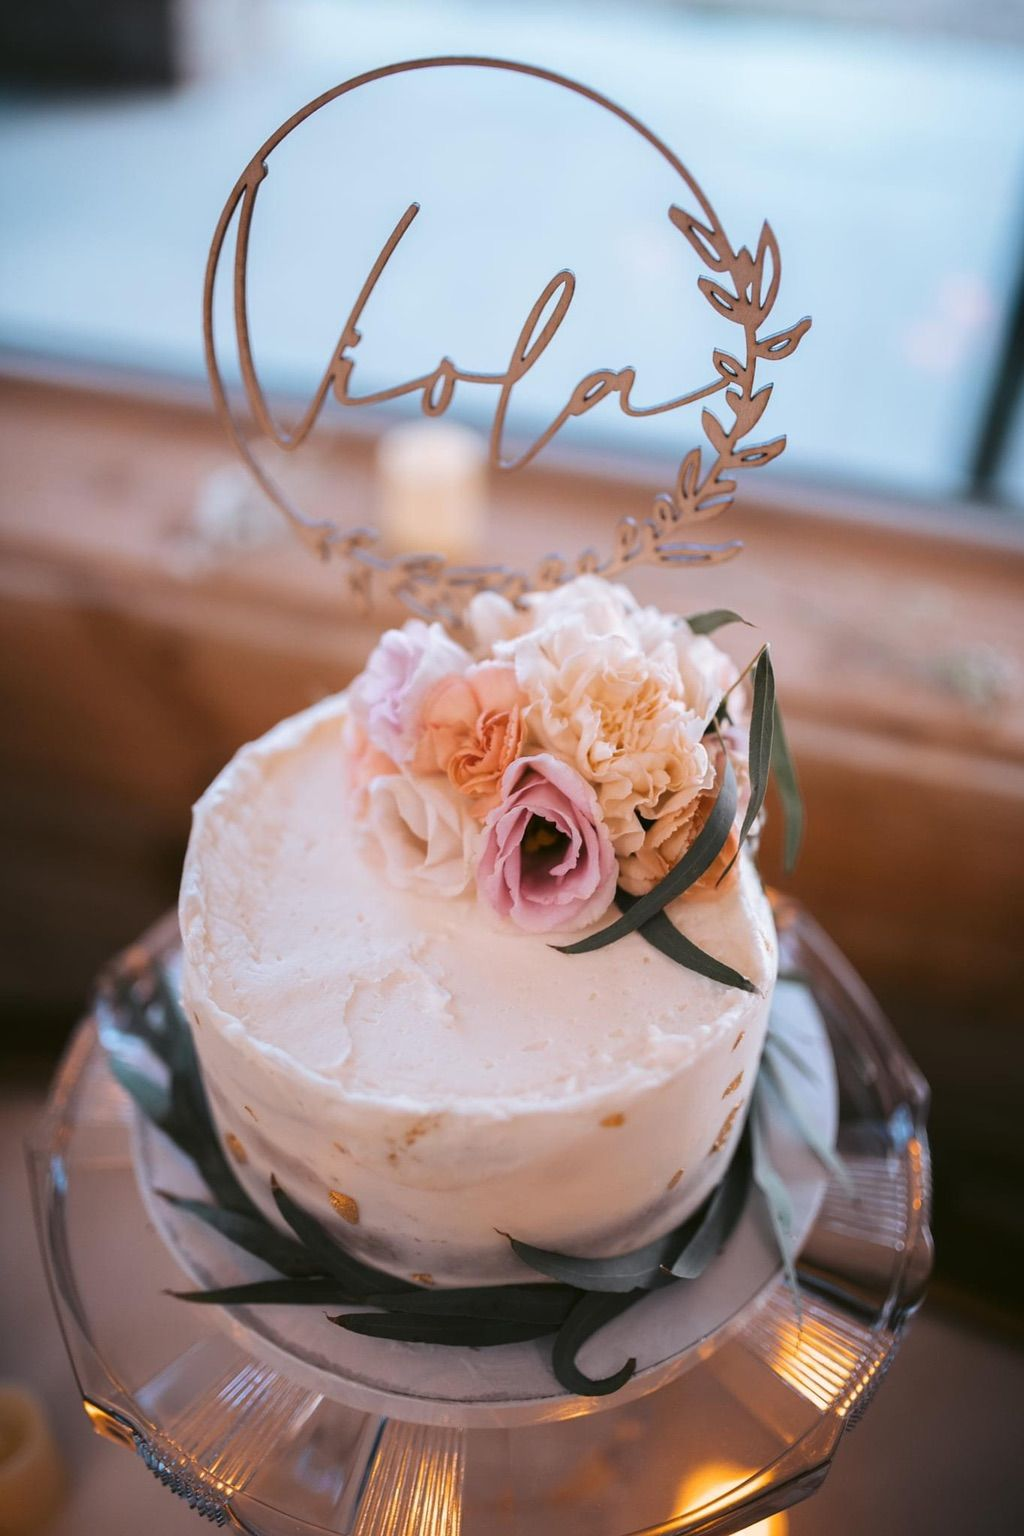 Wedding Cakes - Fort Collins 2020